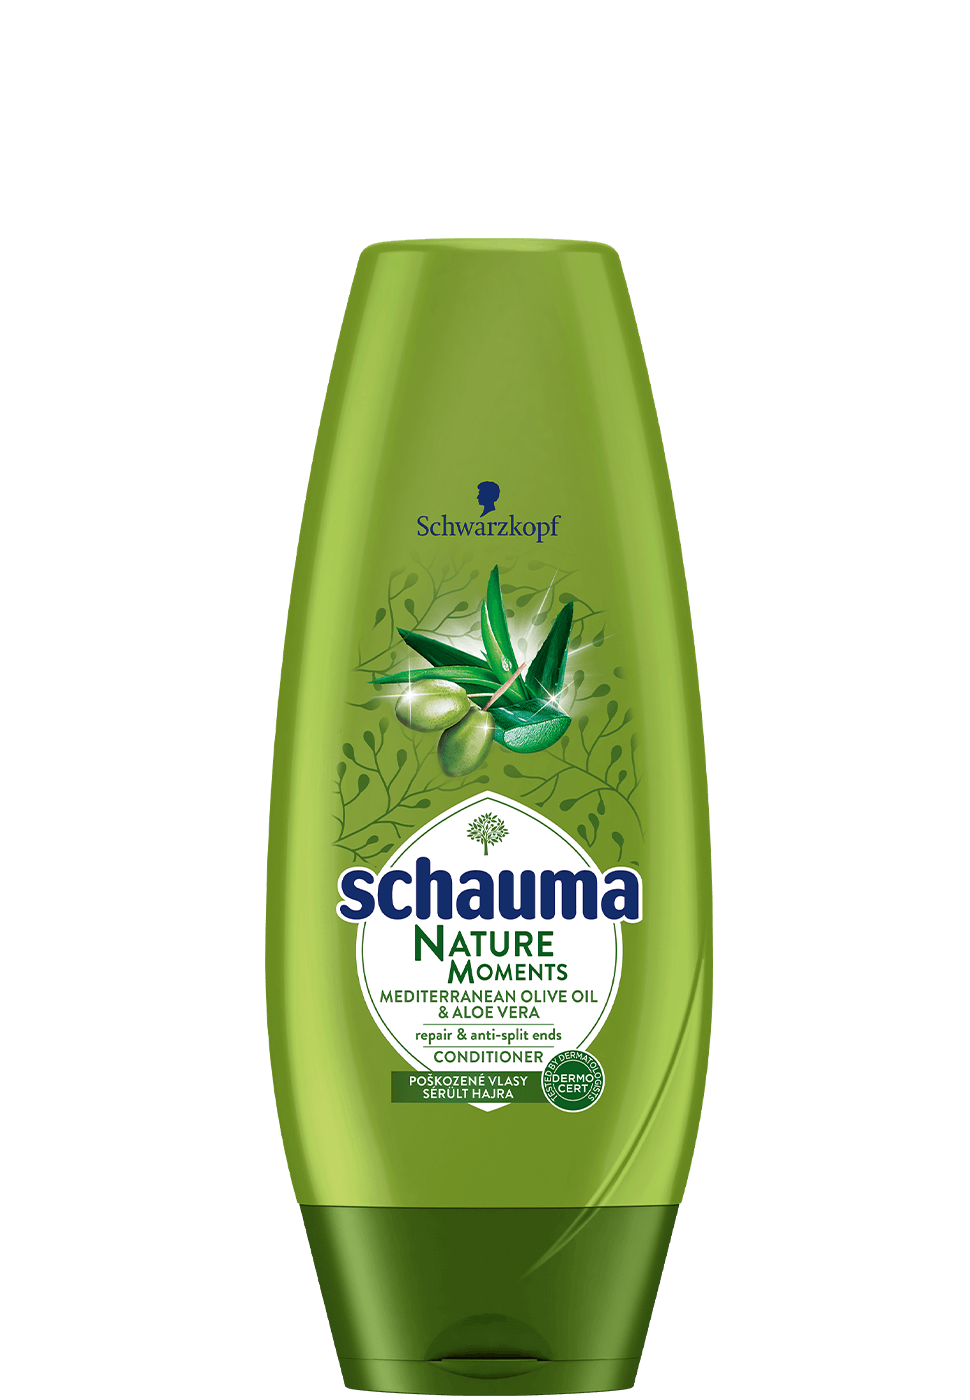 schauma_com_nature_moments_mediterranean_olive_oil_conditioner_970x1400